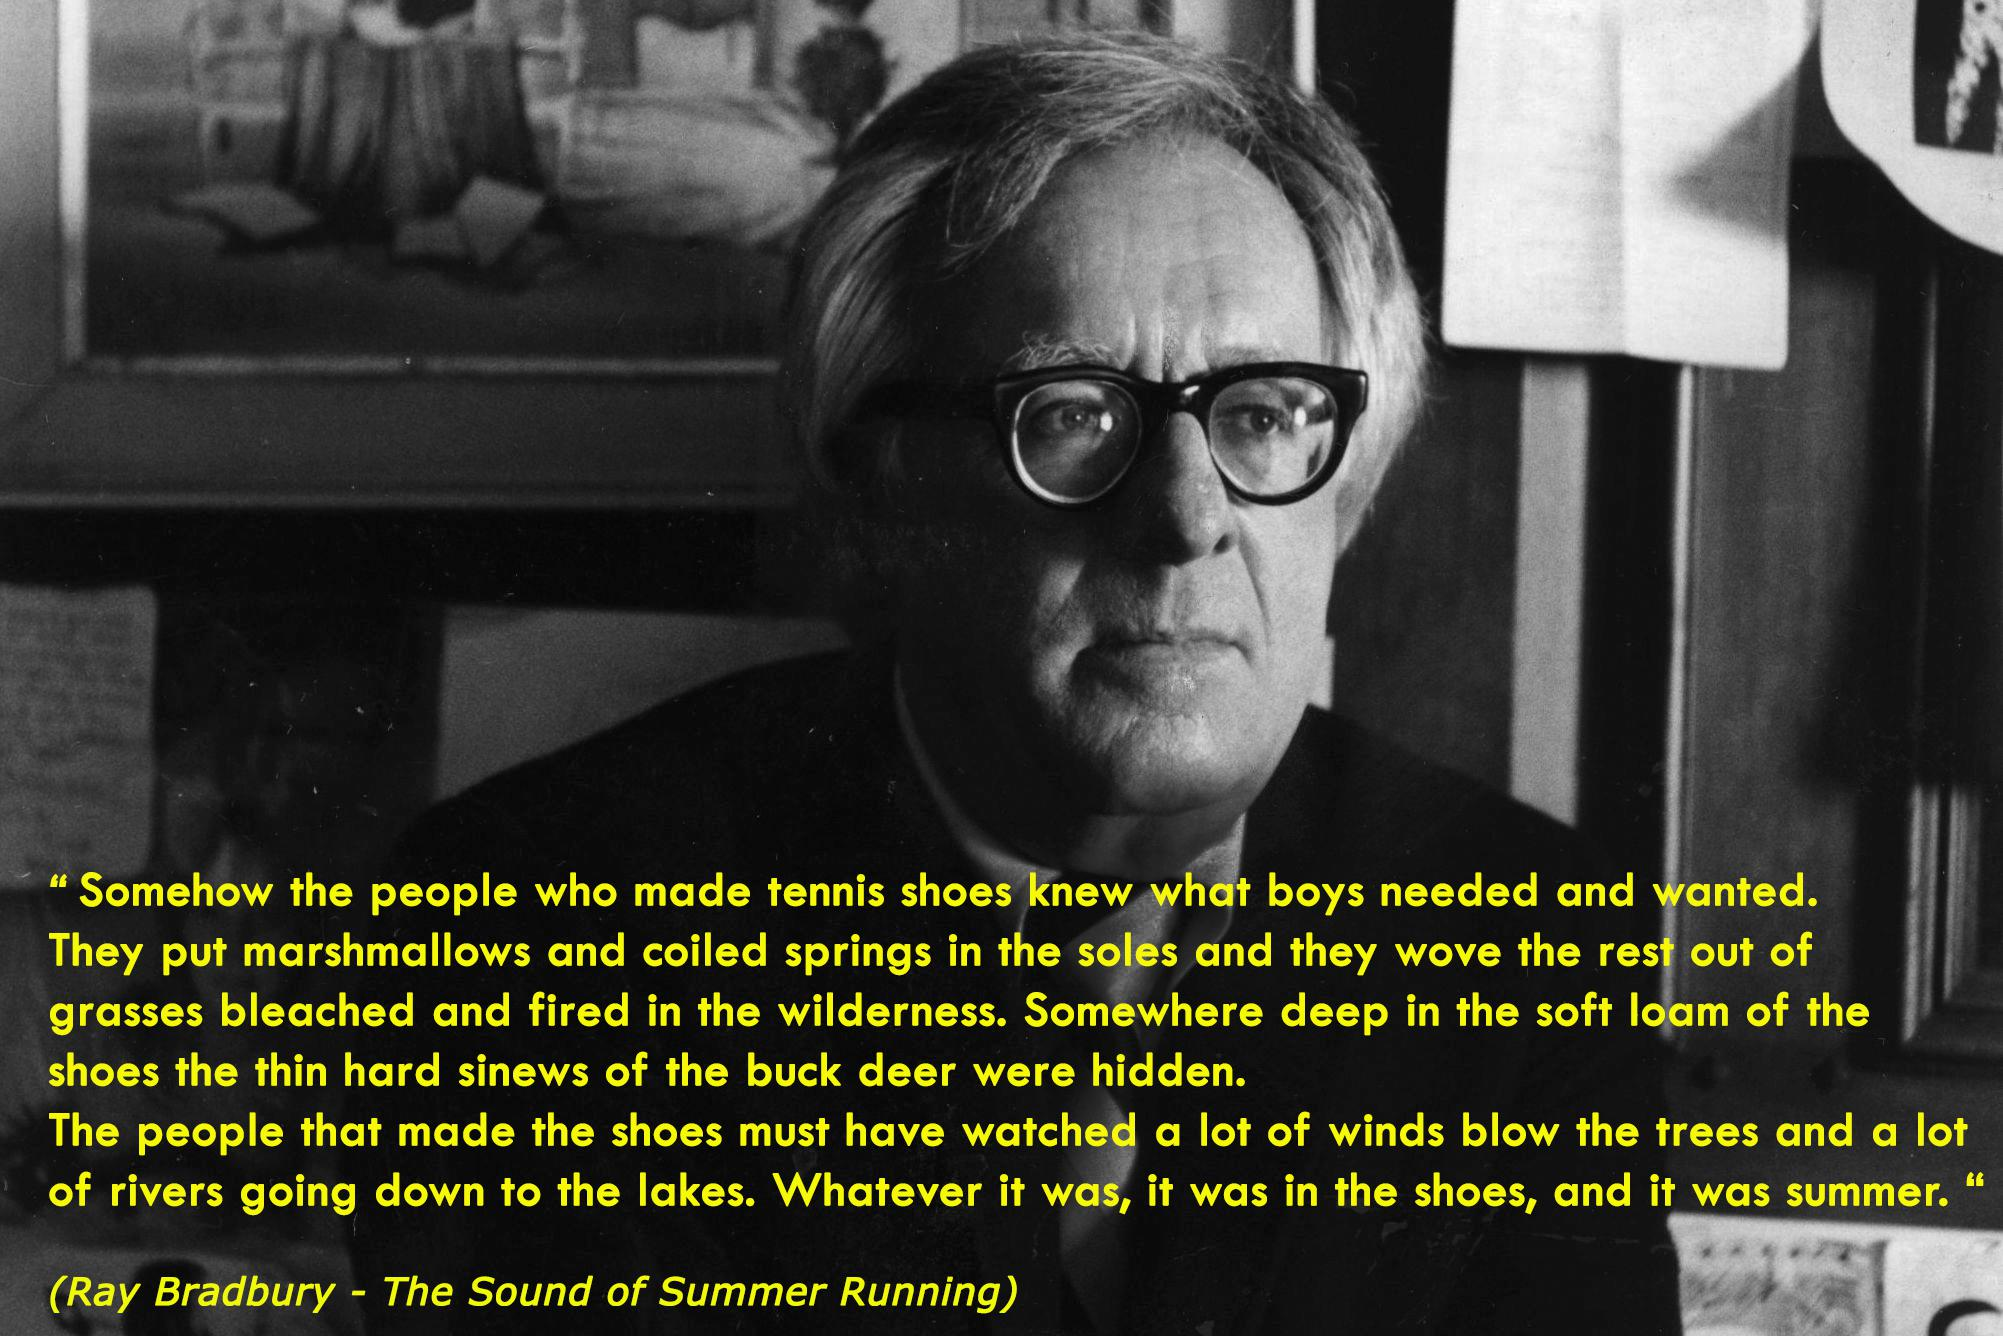 """Somehow the people who made tennis shoes knew what boys needed and wanted…"" by Ray Bradbury [2003×1336]"